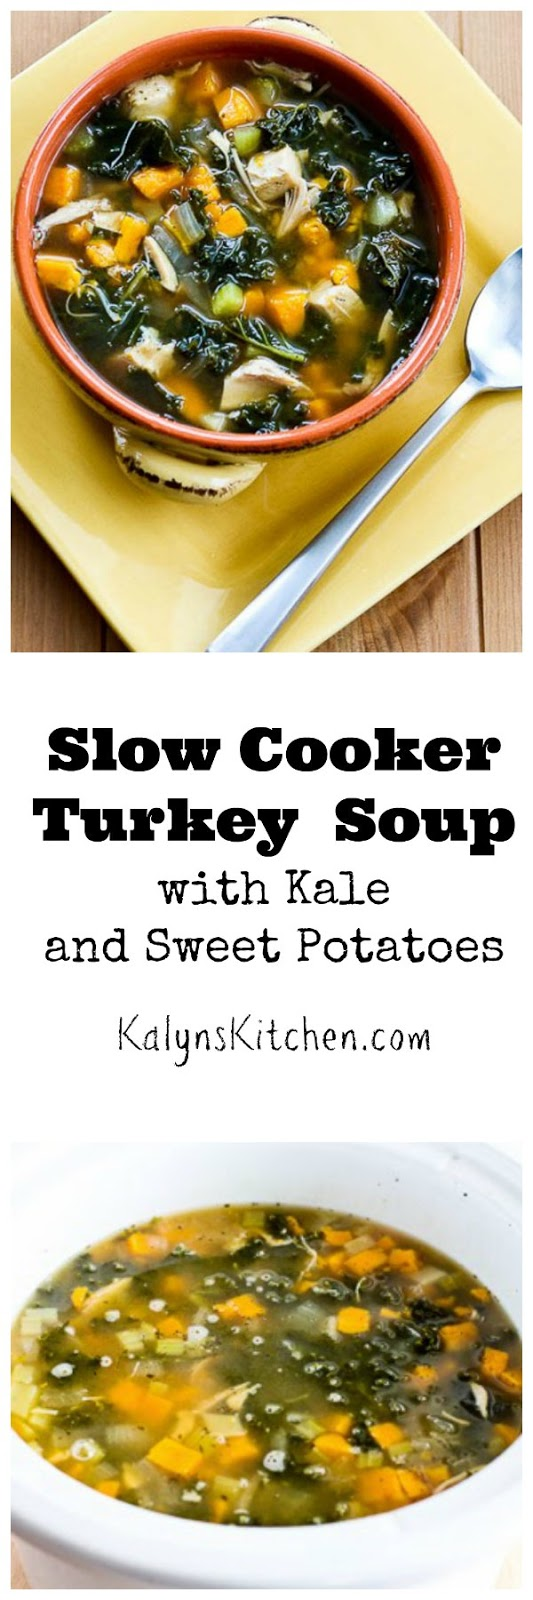 Slow Cooker Turkey (or Chicken) Soup with Kale and Sweet Potatoes ...